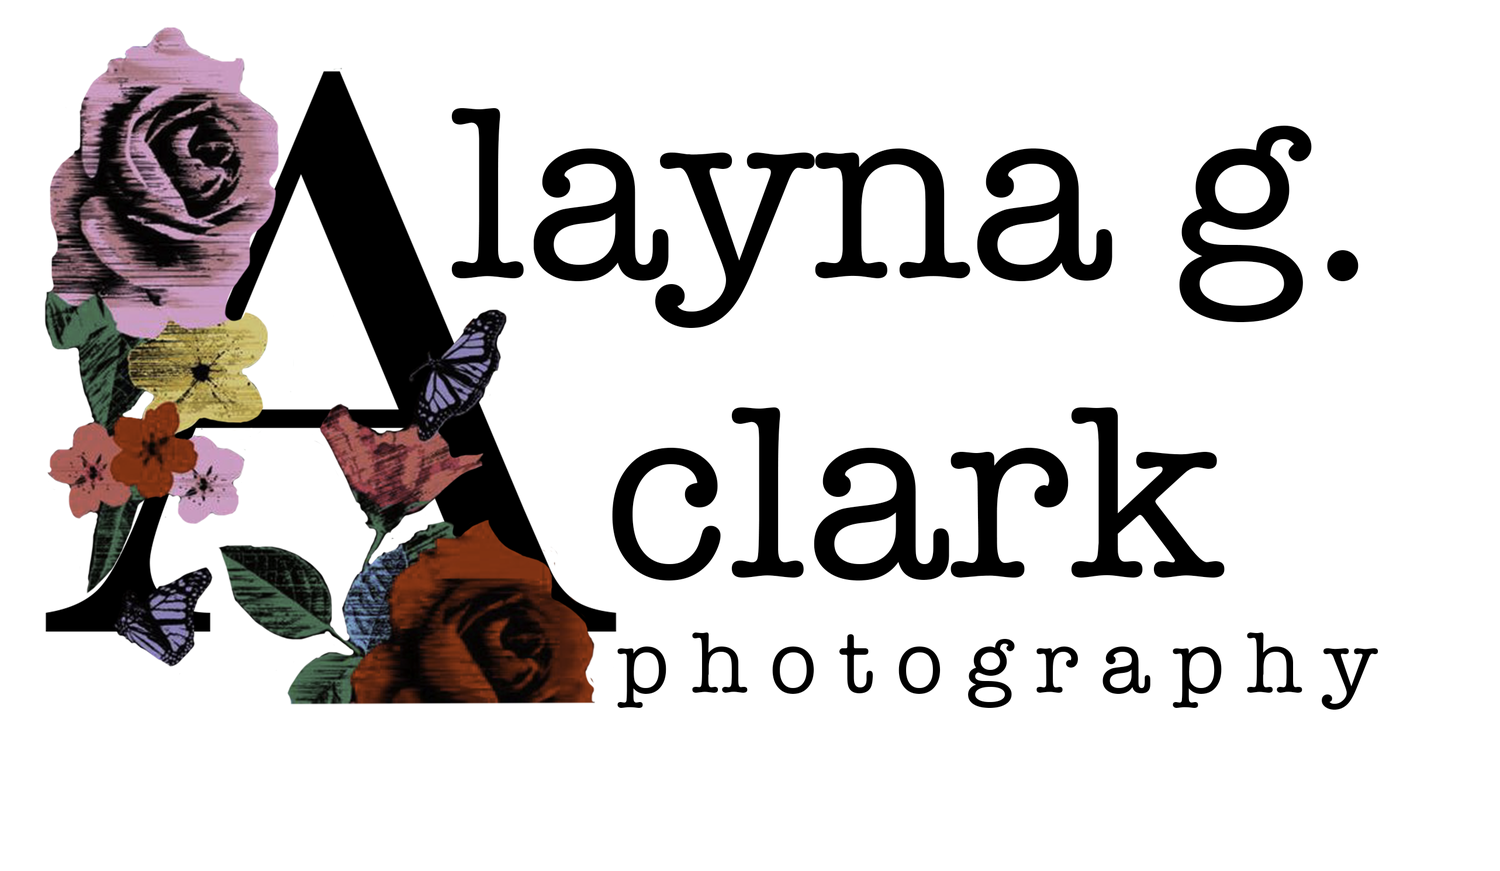 Alayna G. Clark Photography